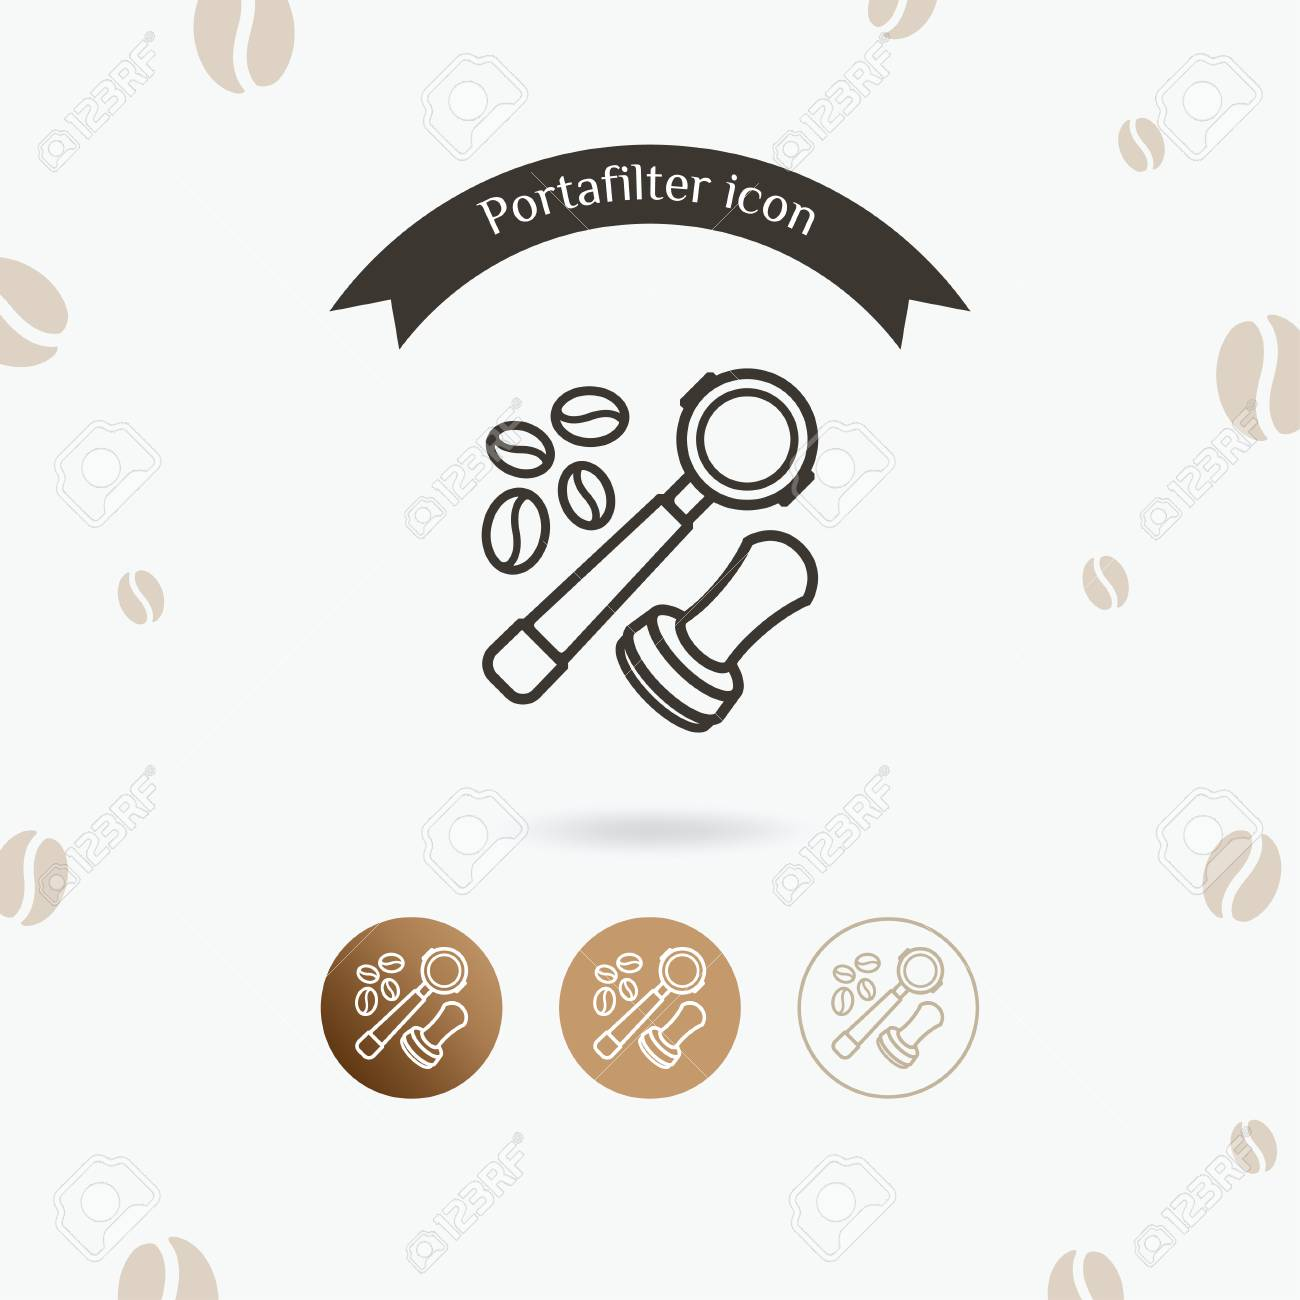 portafilter icon coffee equipment vector illustration barista royalty free cliparts vectors and stock illustration image 97237105 portafilter icon coffee equipment vector illustration barista